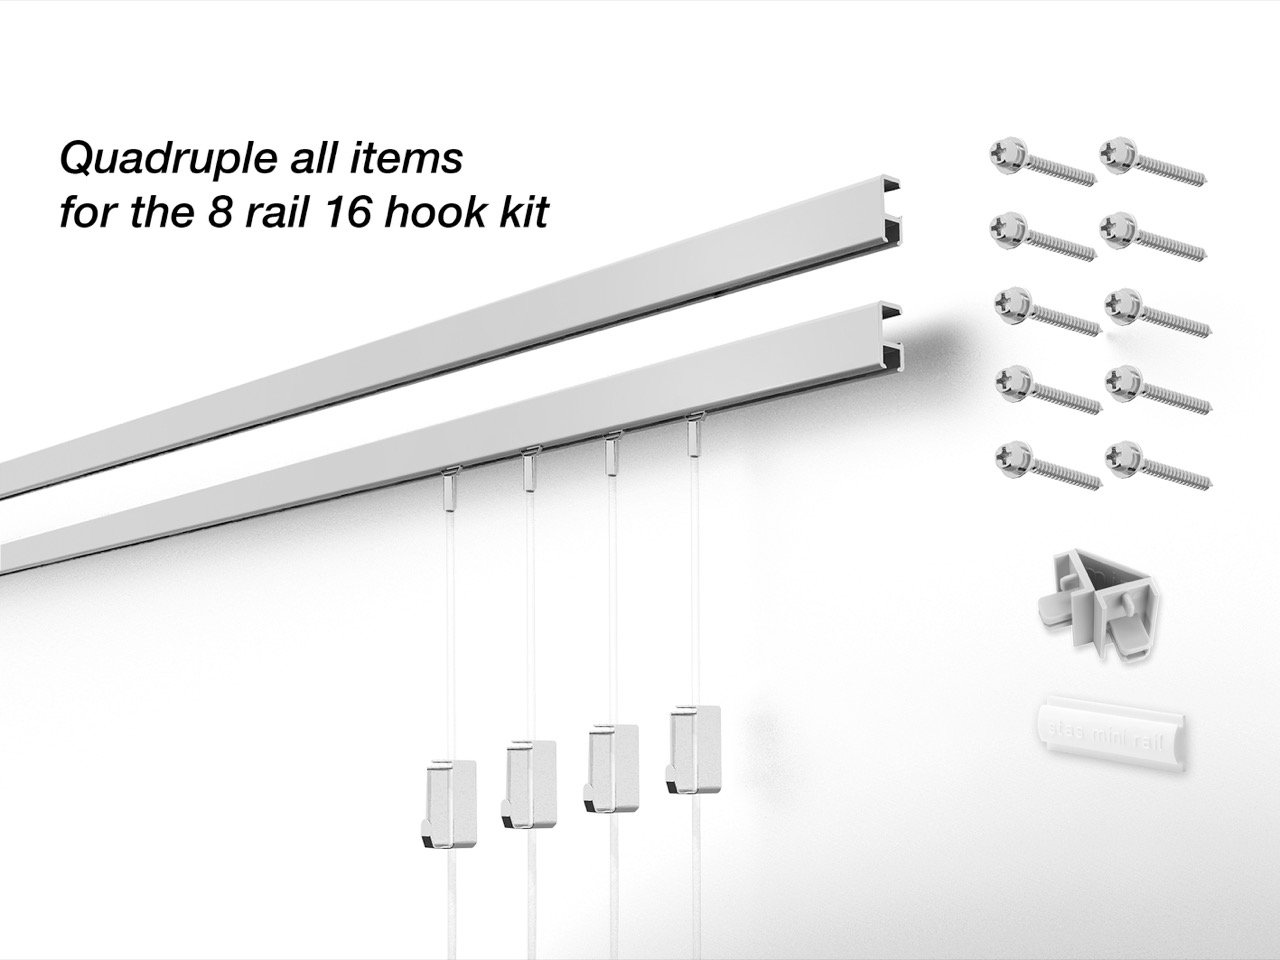 16 Hanging Components STAS Minirail Picture Hanging System- Complete Kit (16 hooks and cords 8 rails 59'', Matte Silver) by Stas Picture Hanging Systems